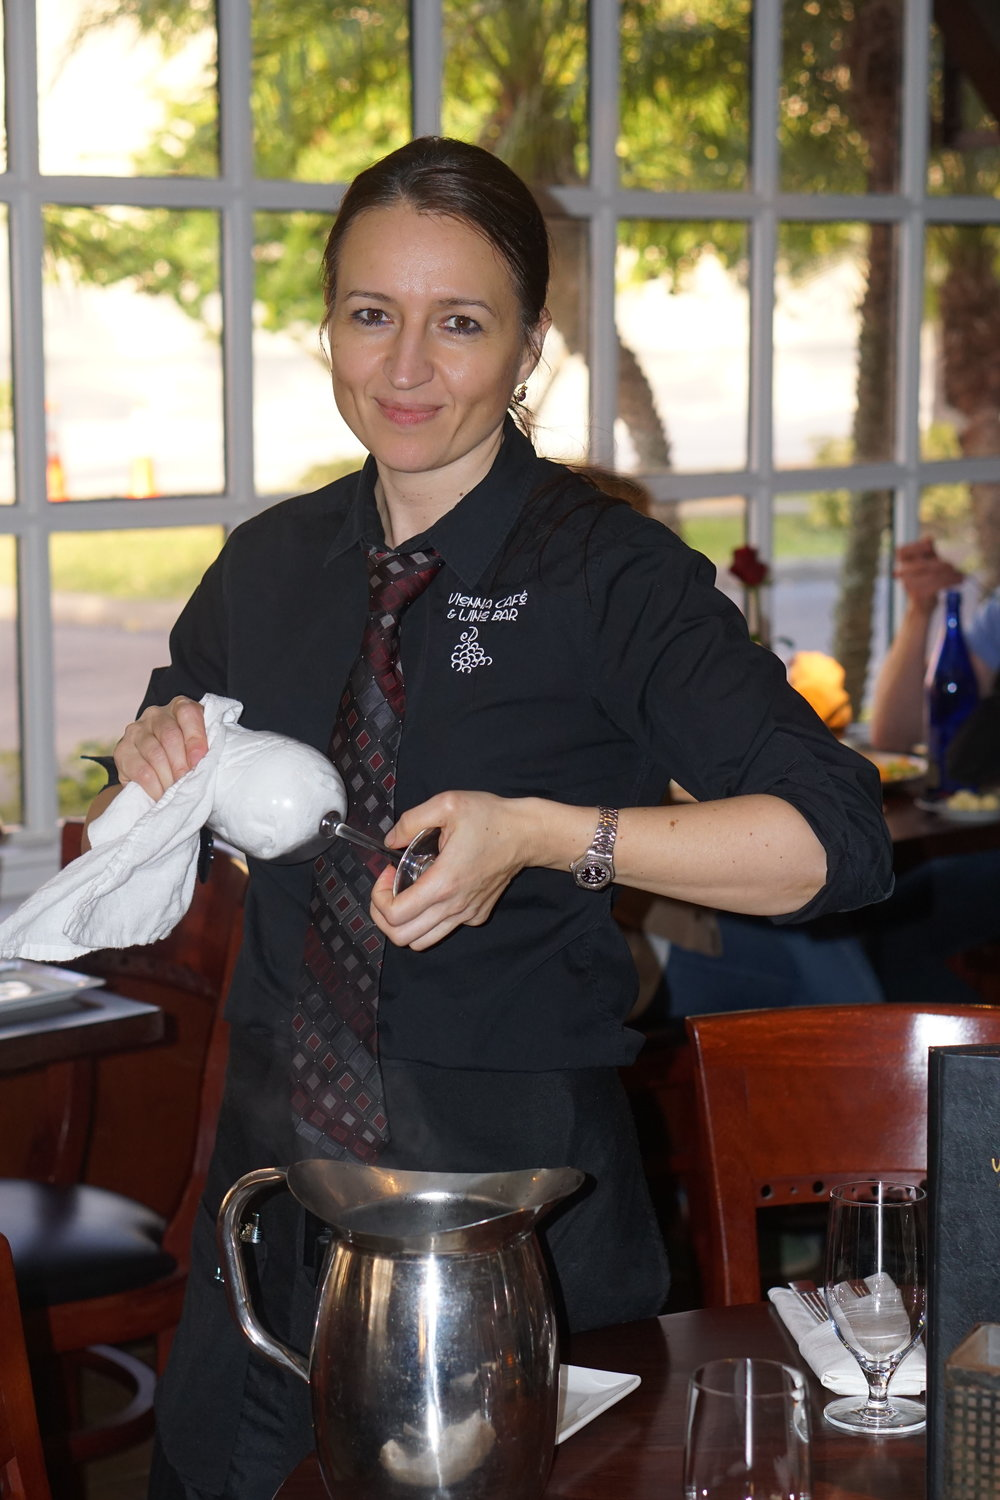 In 2007 Tunde joined - the Vienna cafe team and has since became a favorite server amongst our long time customers. She joined the team in hopes to expand her customer service skills and has since found a passion for food and the different cultures infused in our menu.